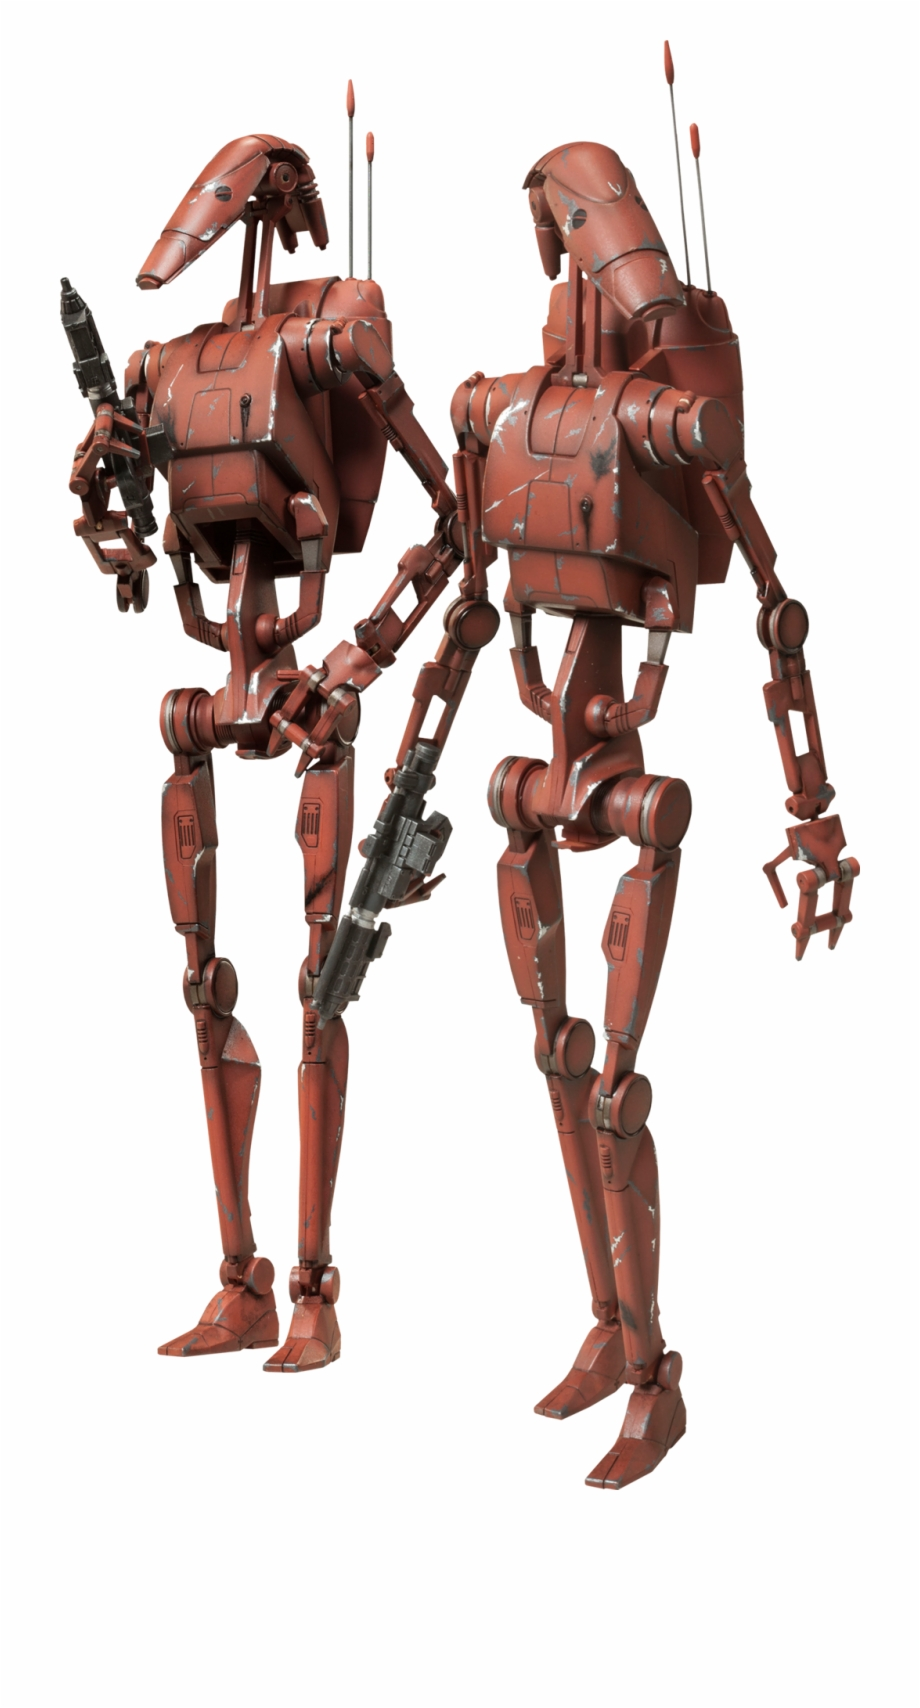 Star Wars Geonosis Droid Free PNG Images & Clipart Download #719390.